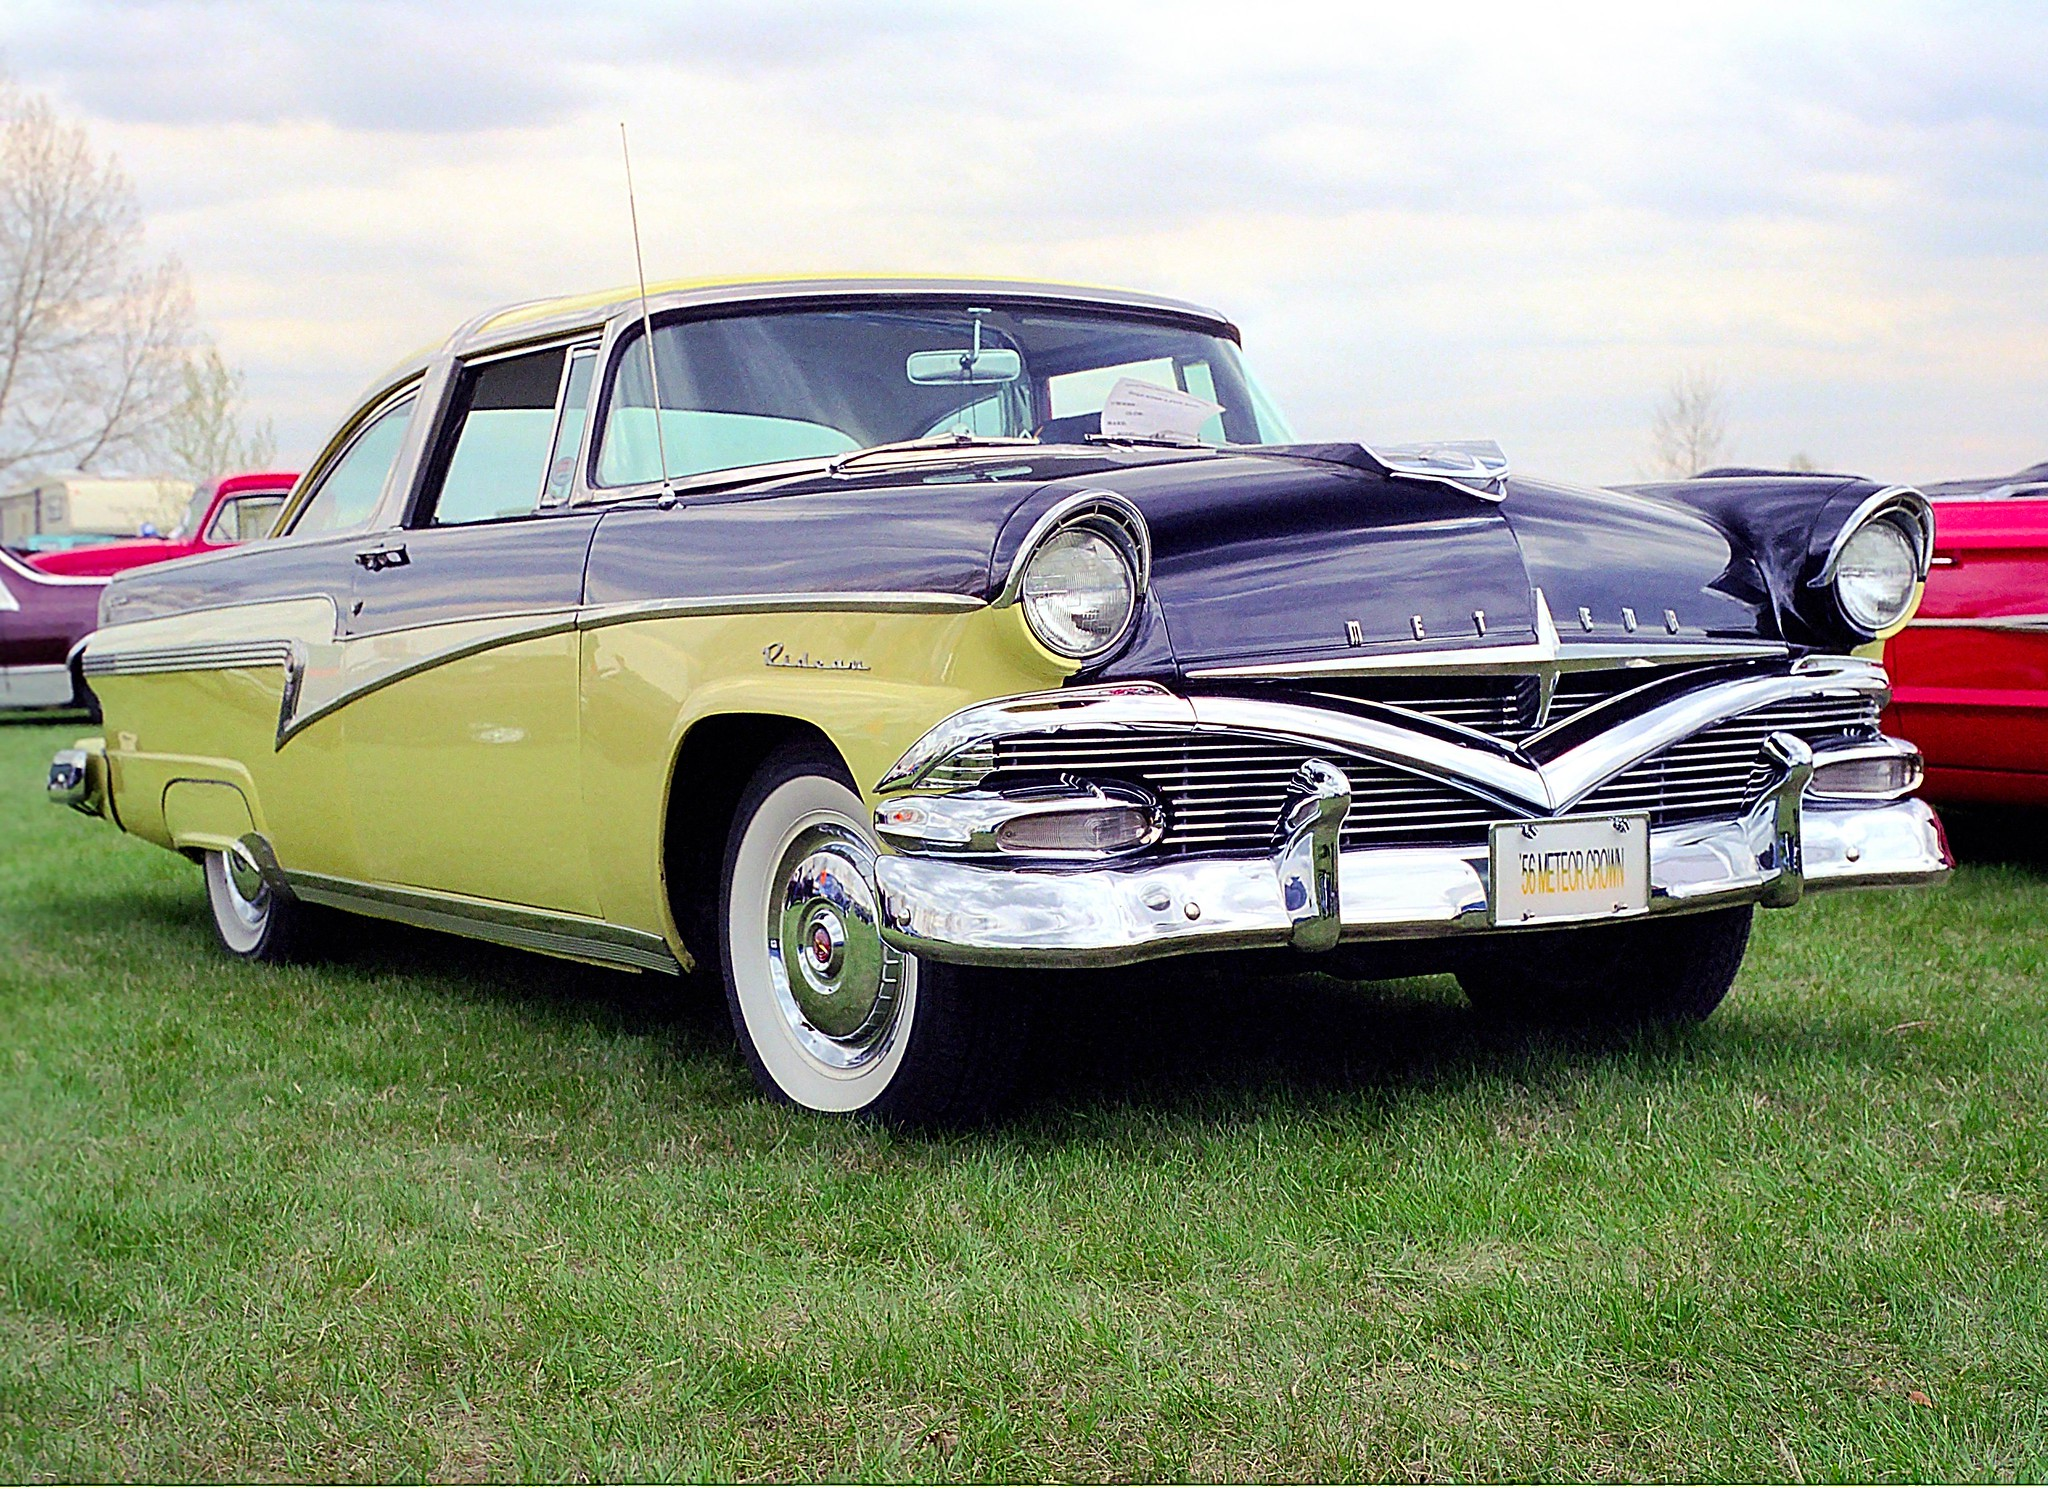 Orphan of the Day, 12-19, 1956 Meteor Rideau Crown Victoria